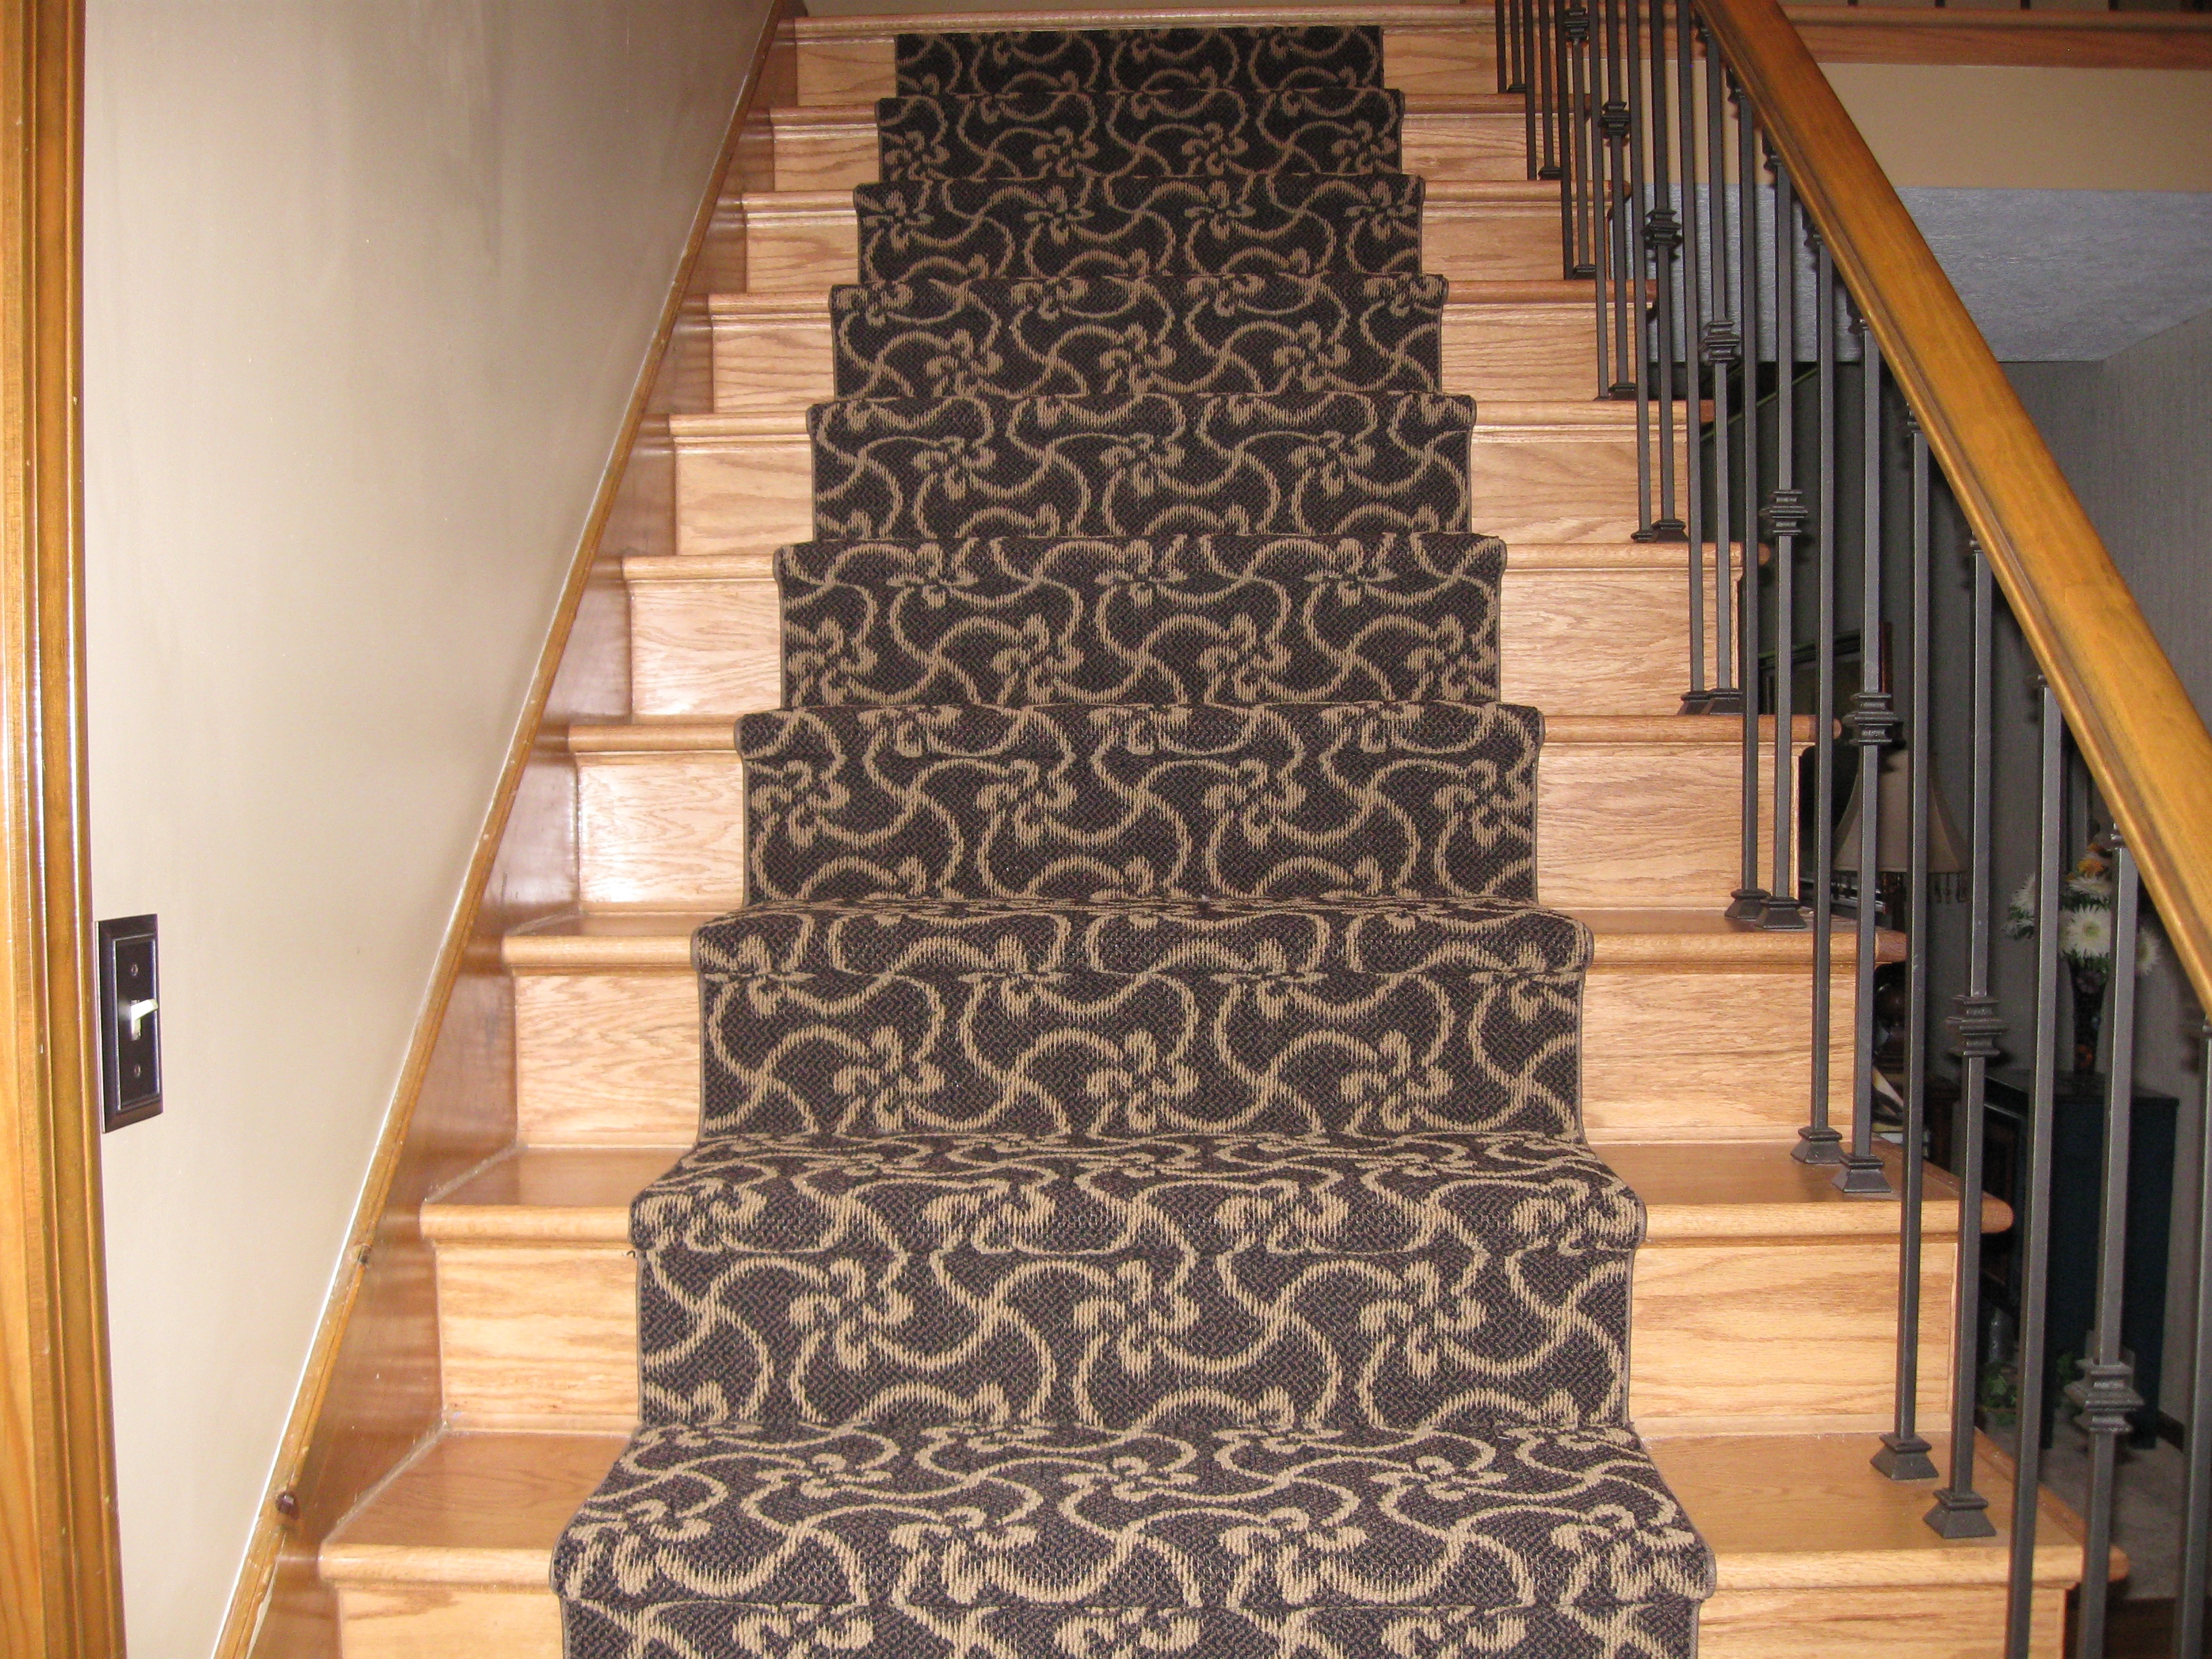 Rug For Stairs Cievi Home With Stair Tread Rug Holders (View 20 of 20)